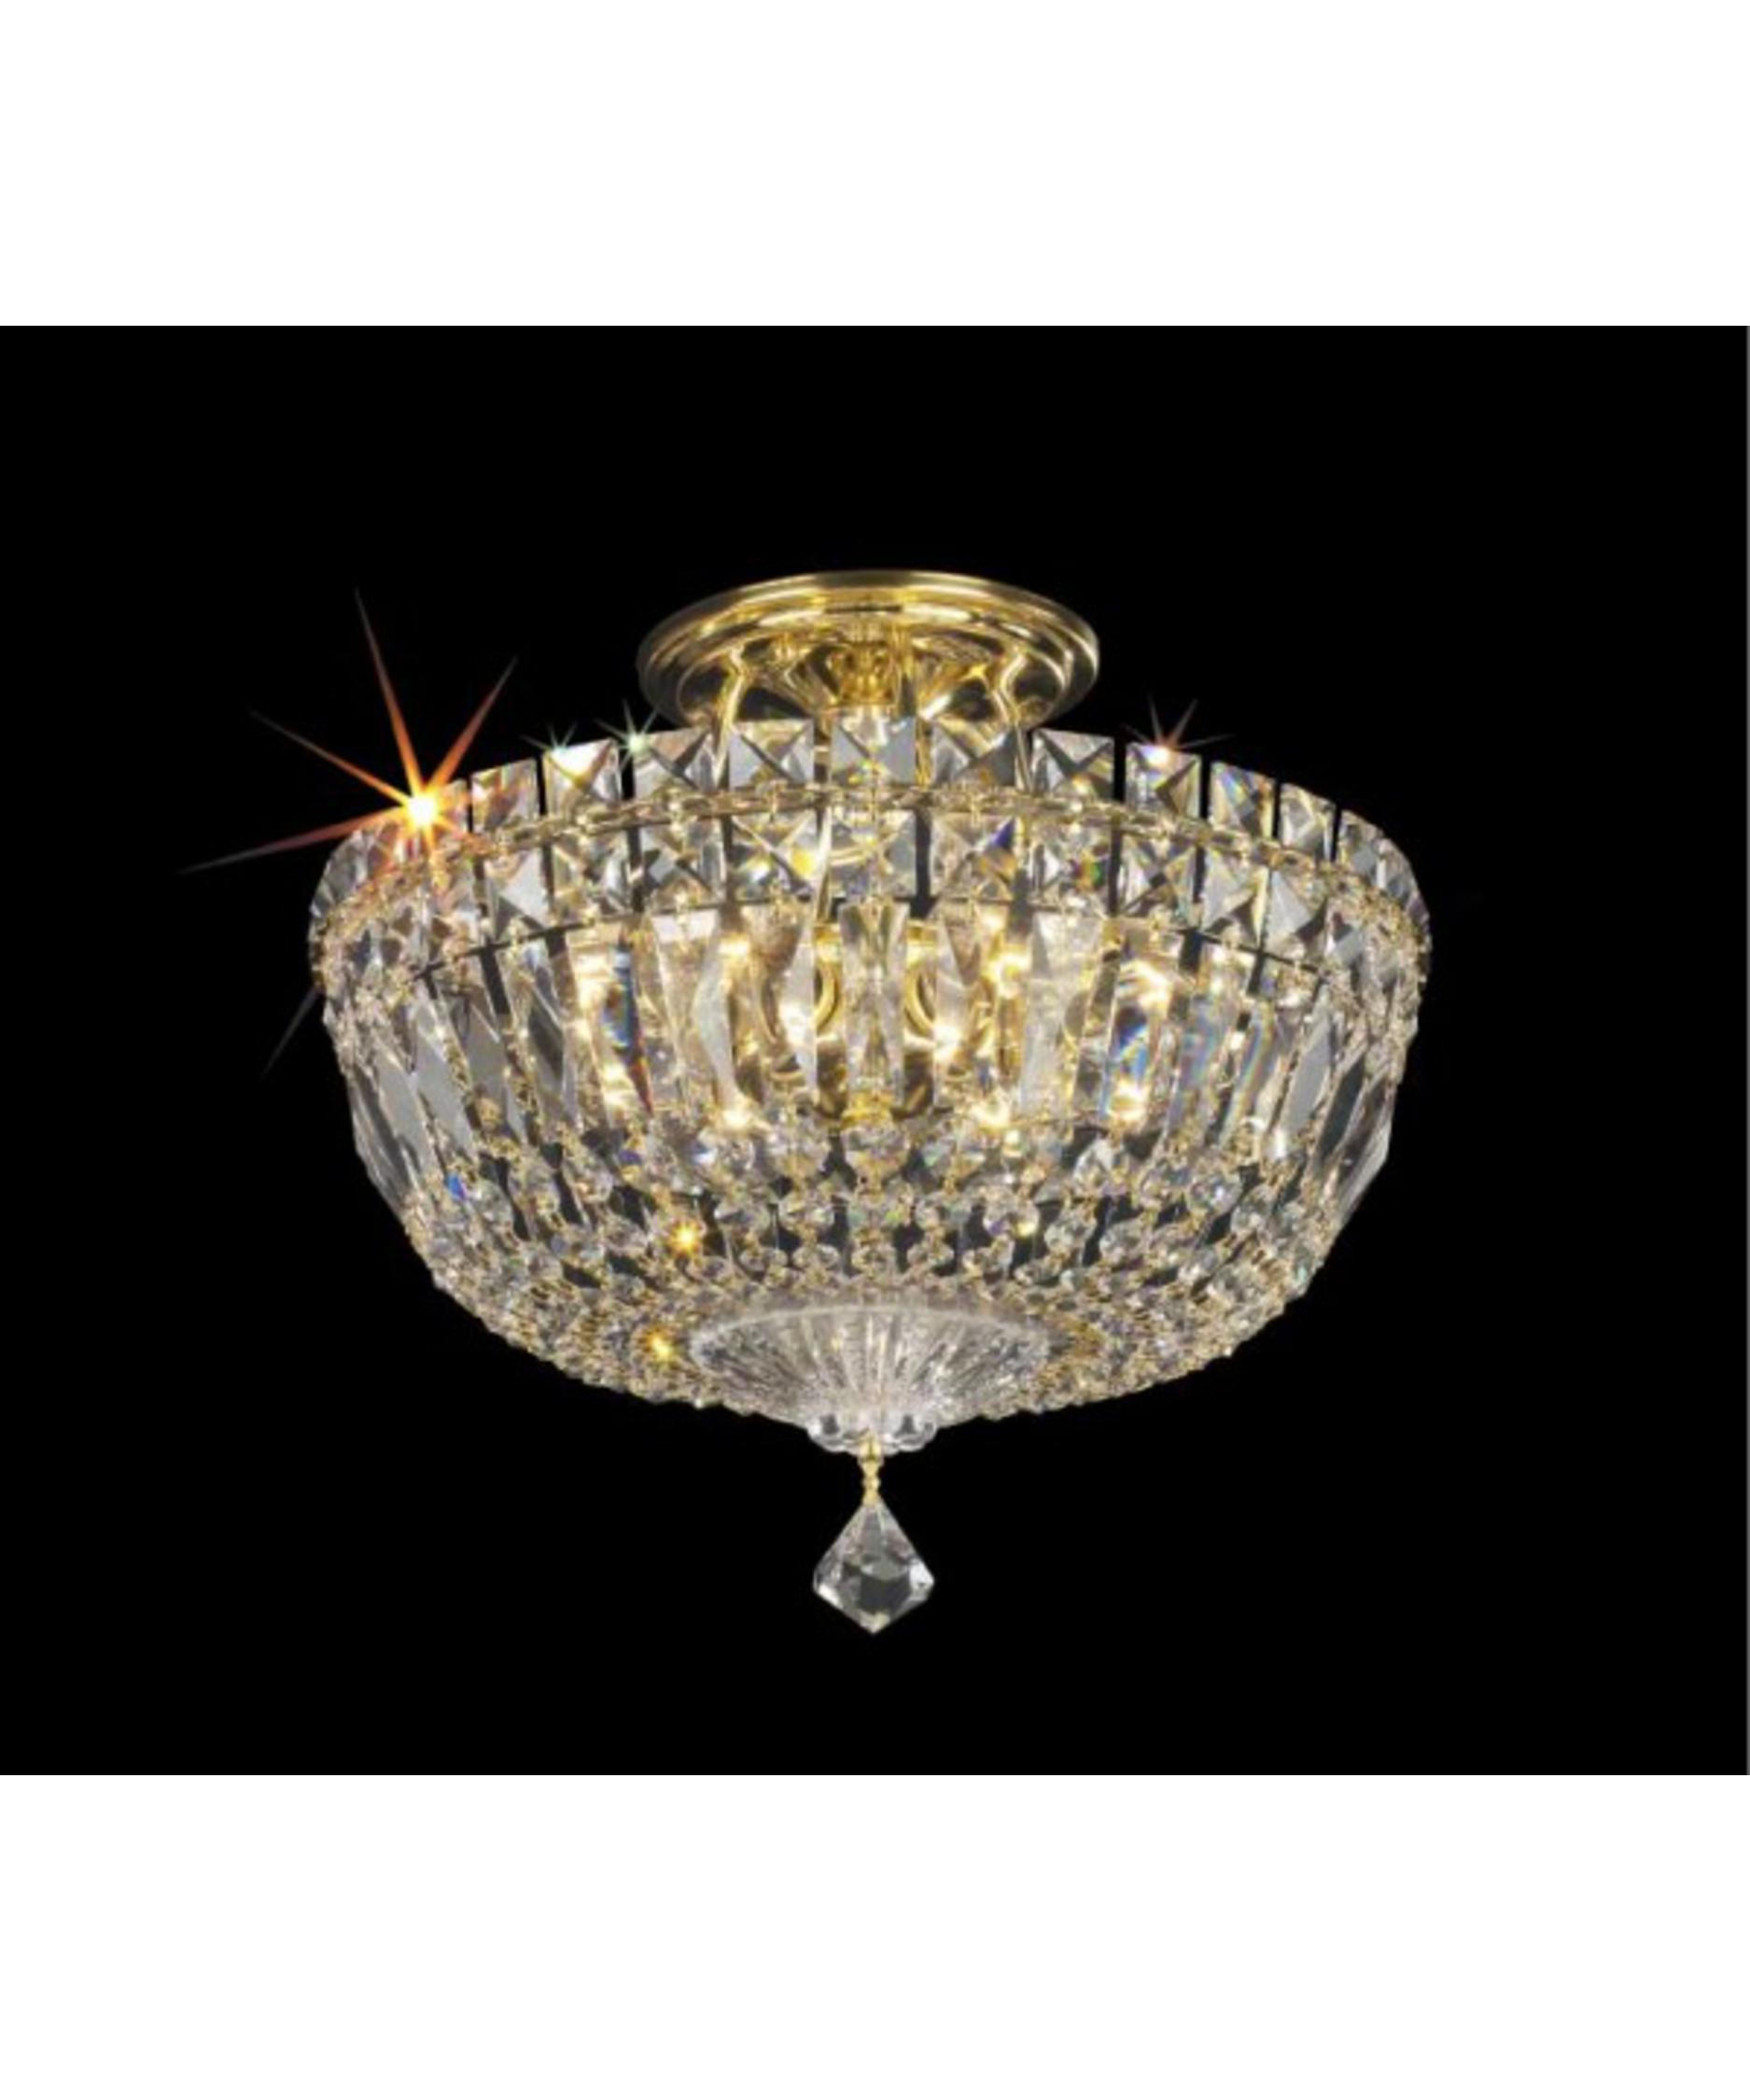 schonbek petit crystal deluxe 12 inch wide semi flush mount capitol lighting - Schonbek Lighting